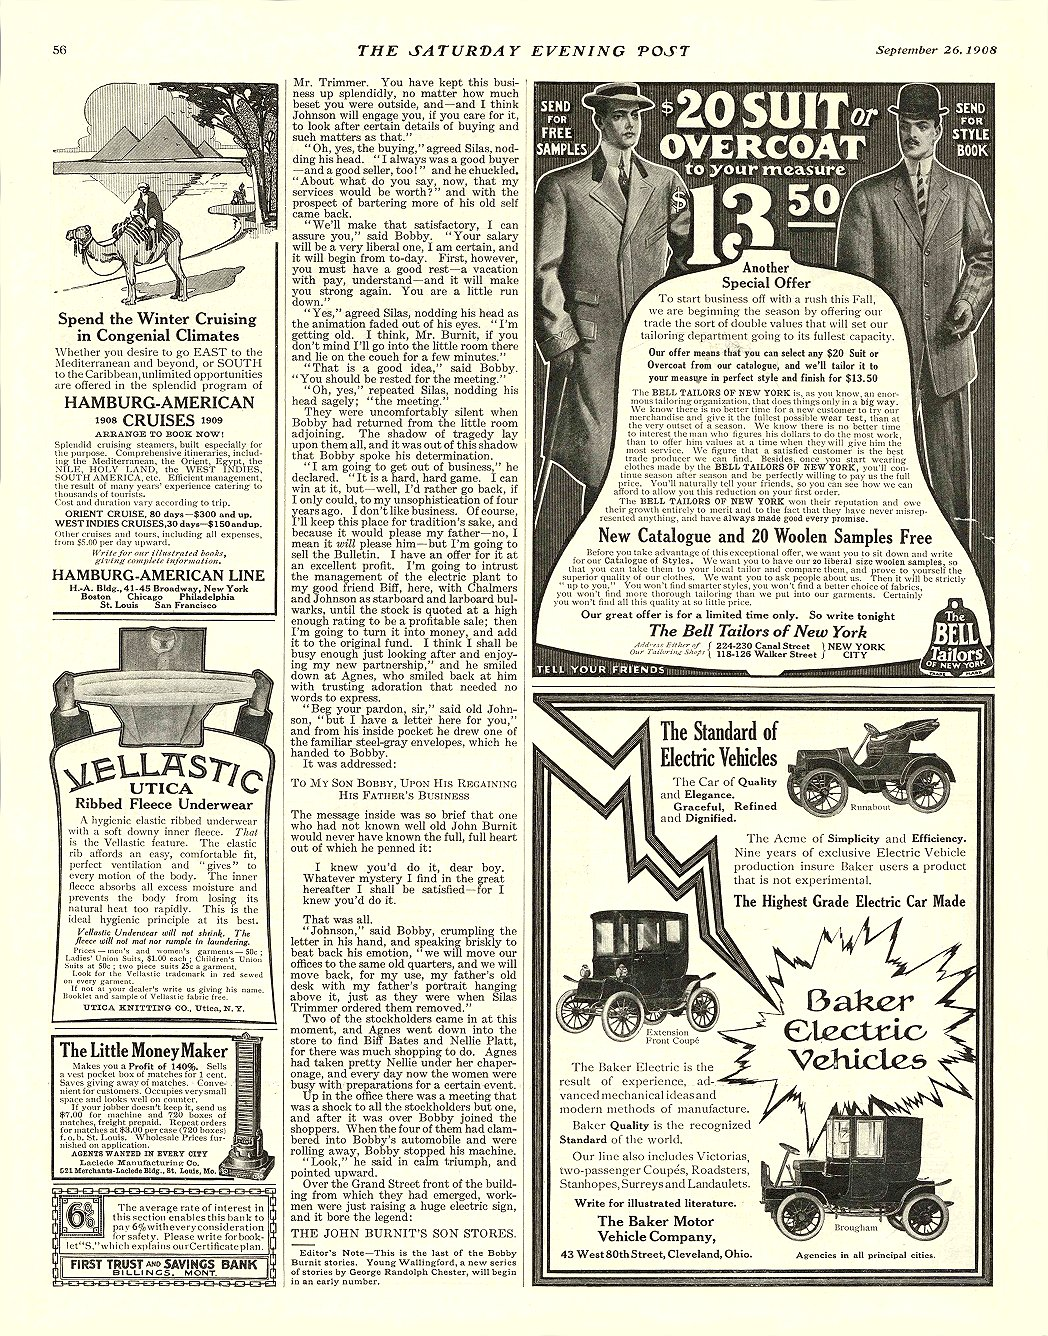 1908 9 26 BAKER Electric The Standard of Electric Vehicles The Baker Motor Vehicle Company Cleveland, OHIO THE SATURDAY EVENING POST September 26, 1908 11″x14″ page 56